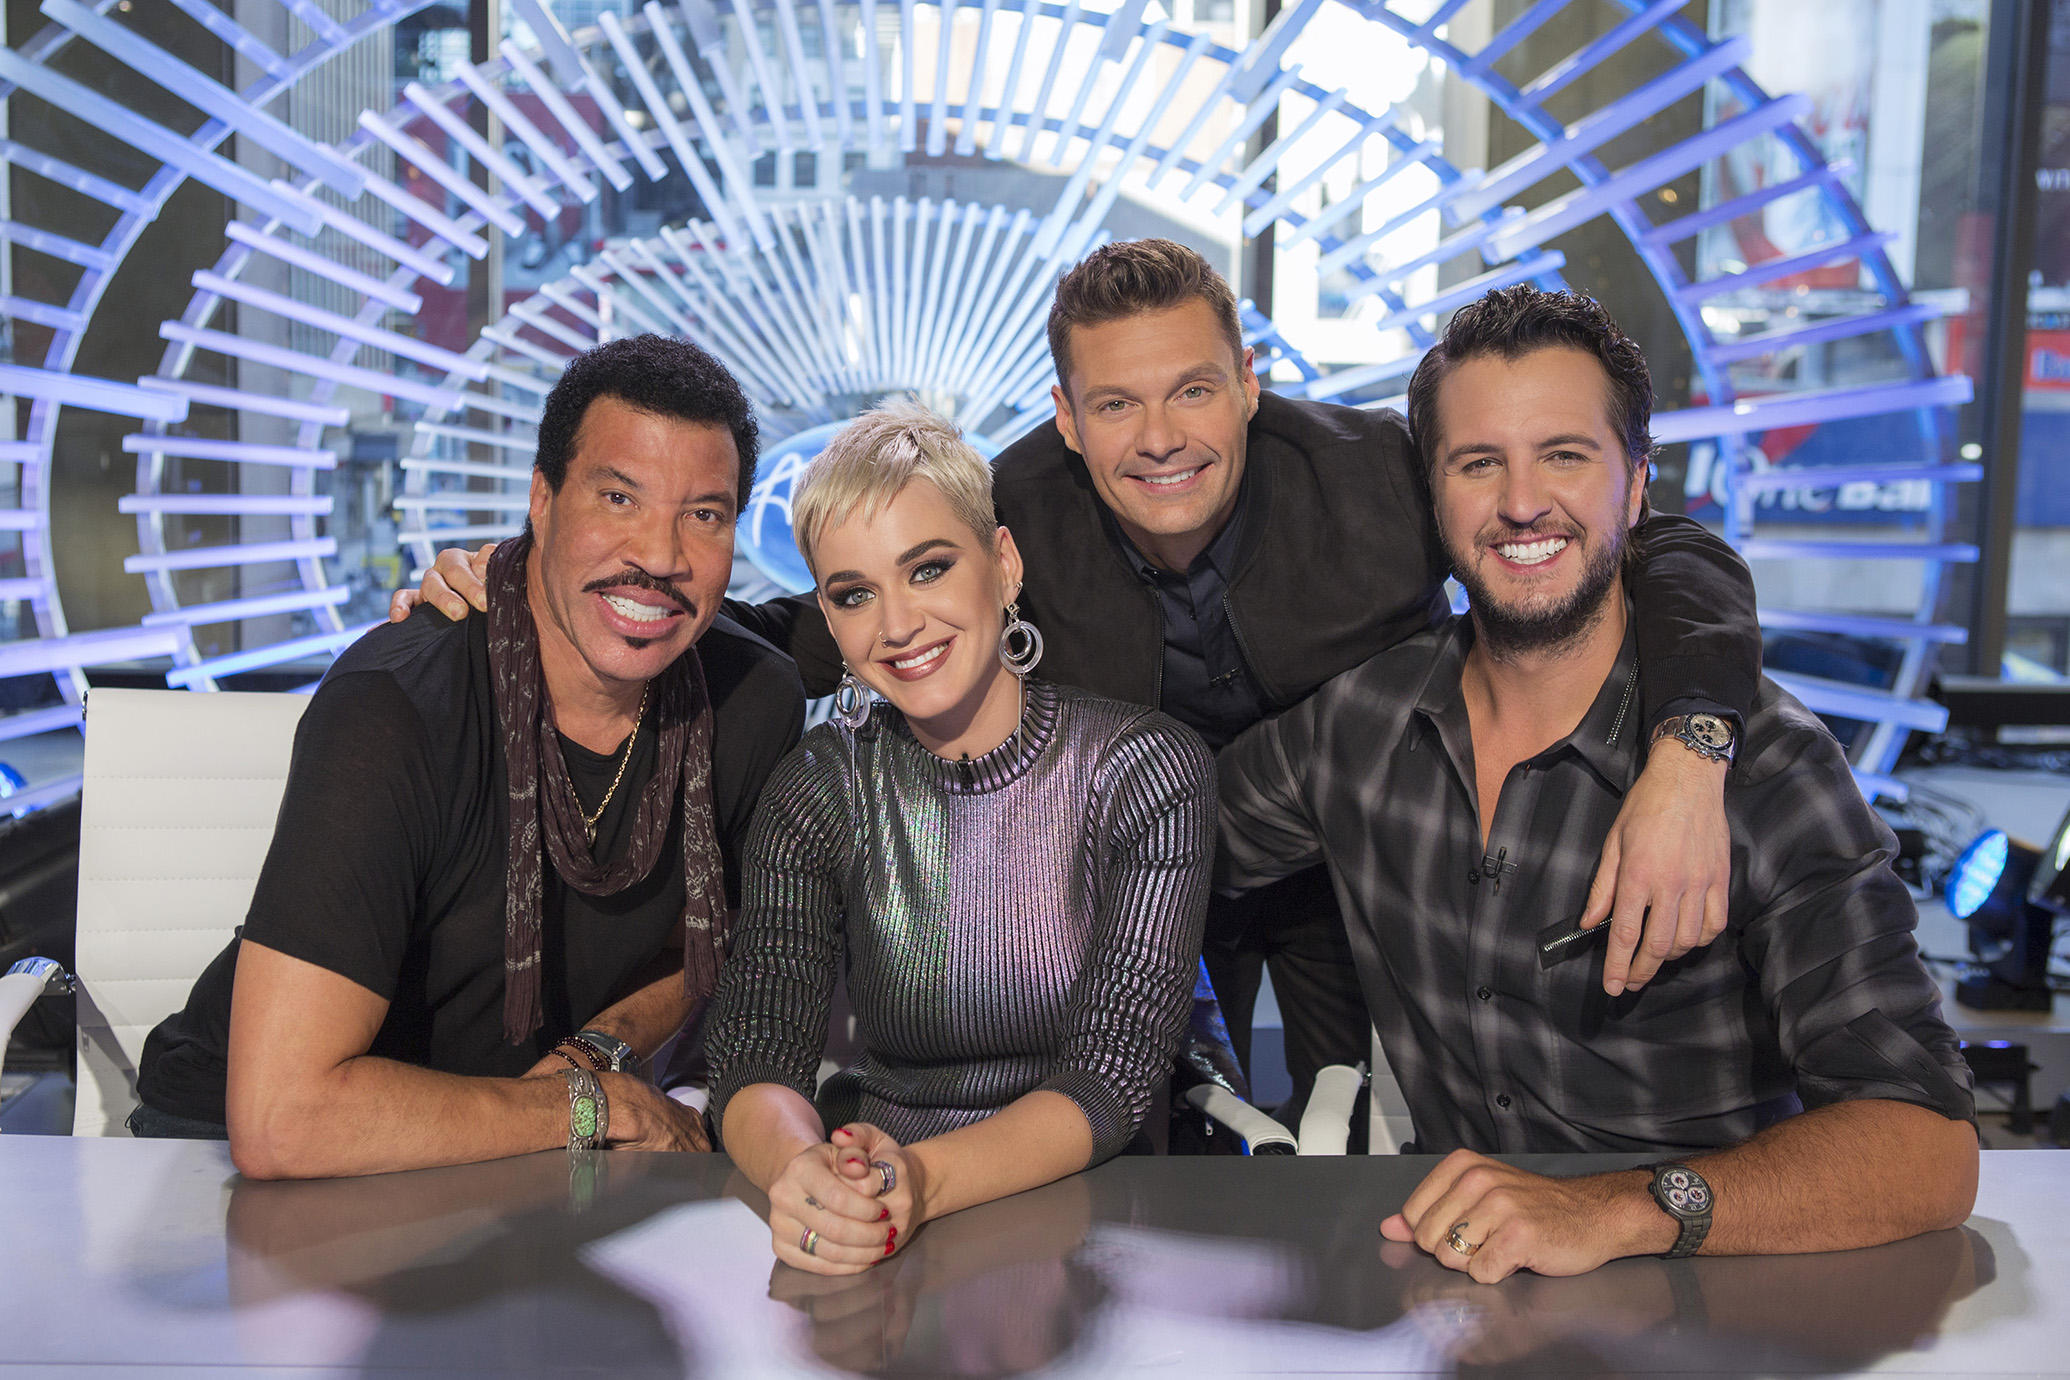 Lionel Richie, Katy Perry, Ryan Seacrest and Luke Bryan, American Idol | Photo Credits: Eric Liebowitz, ABC